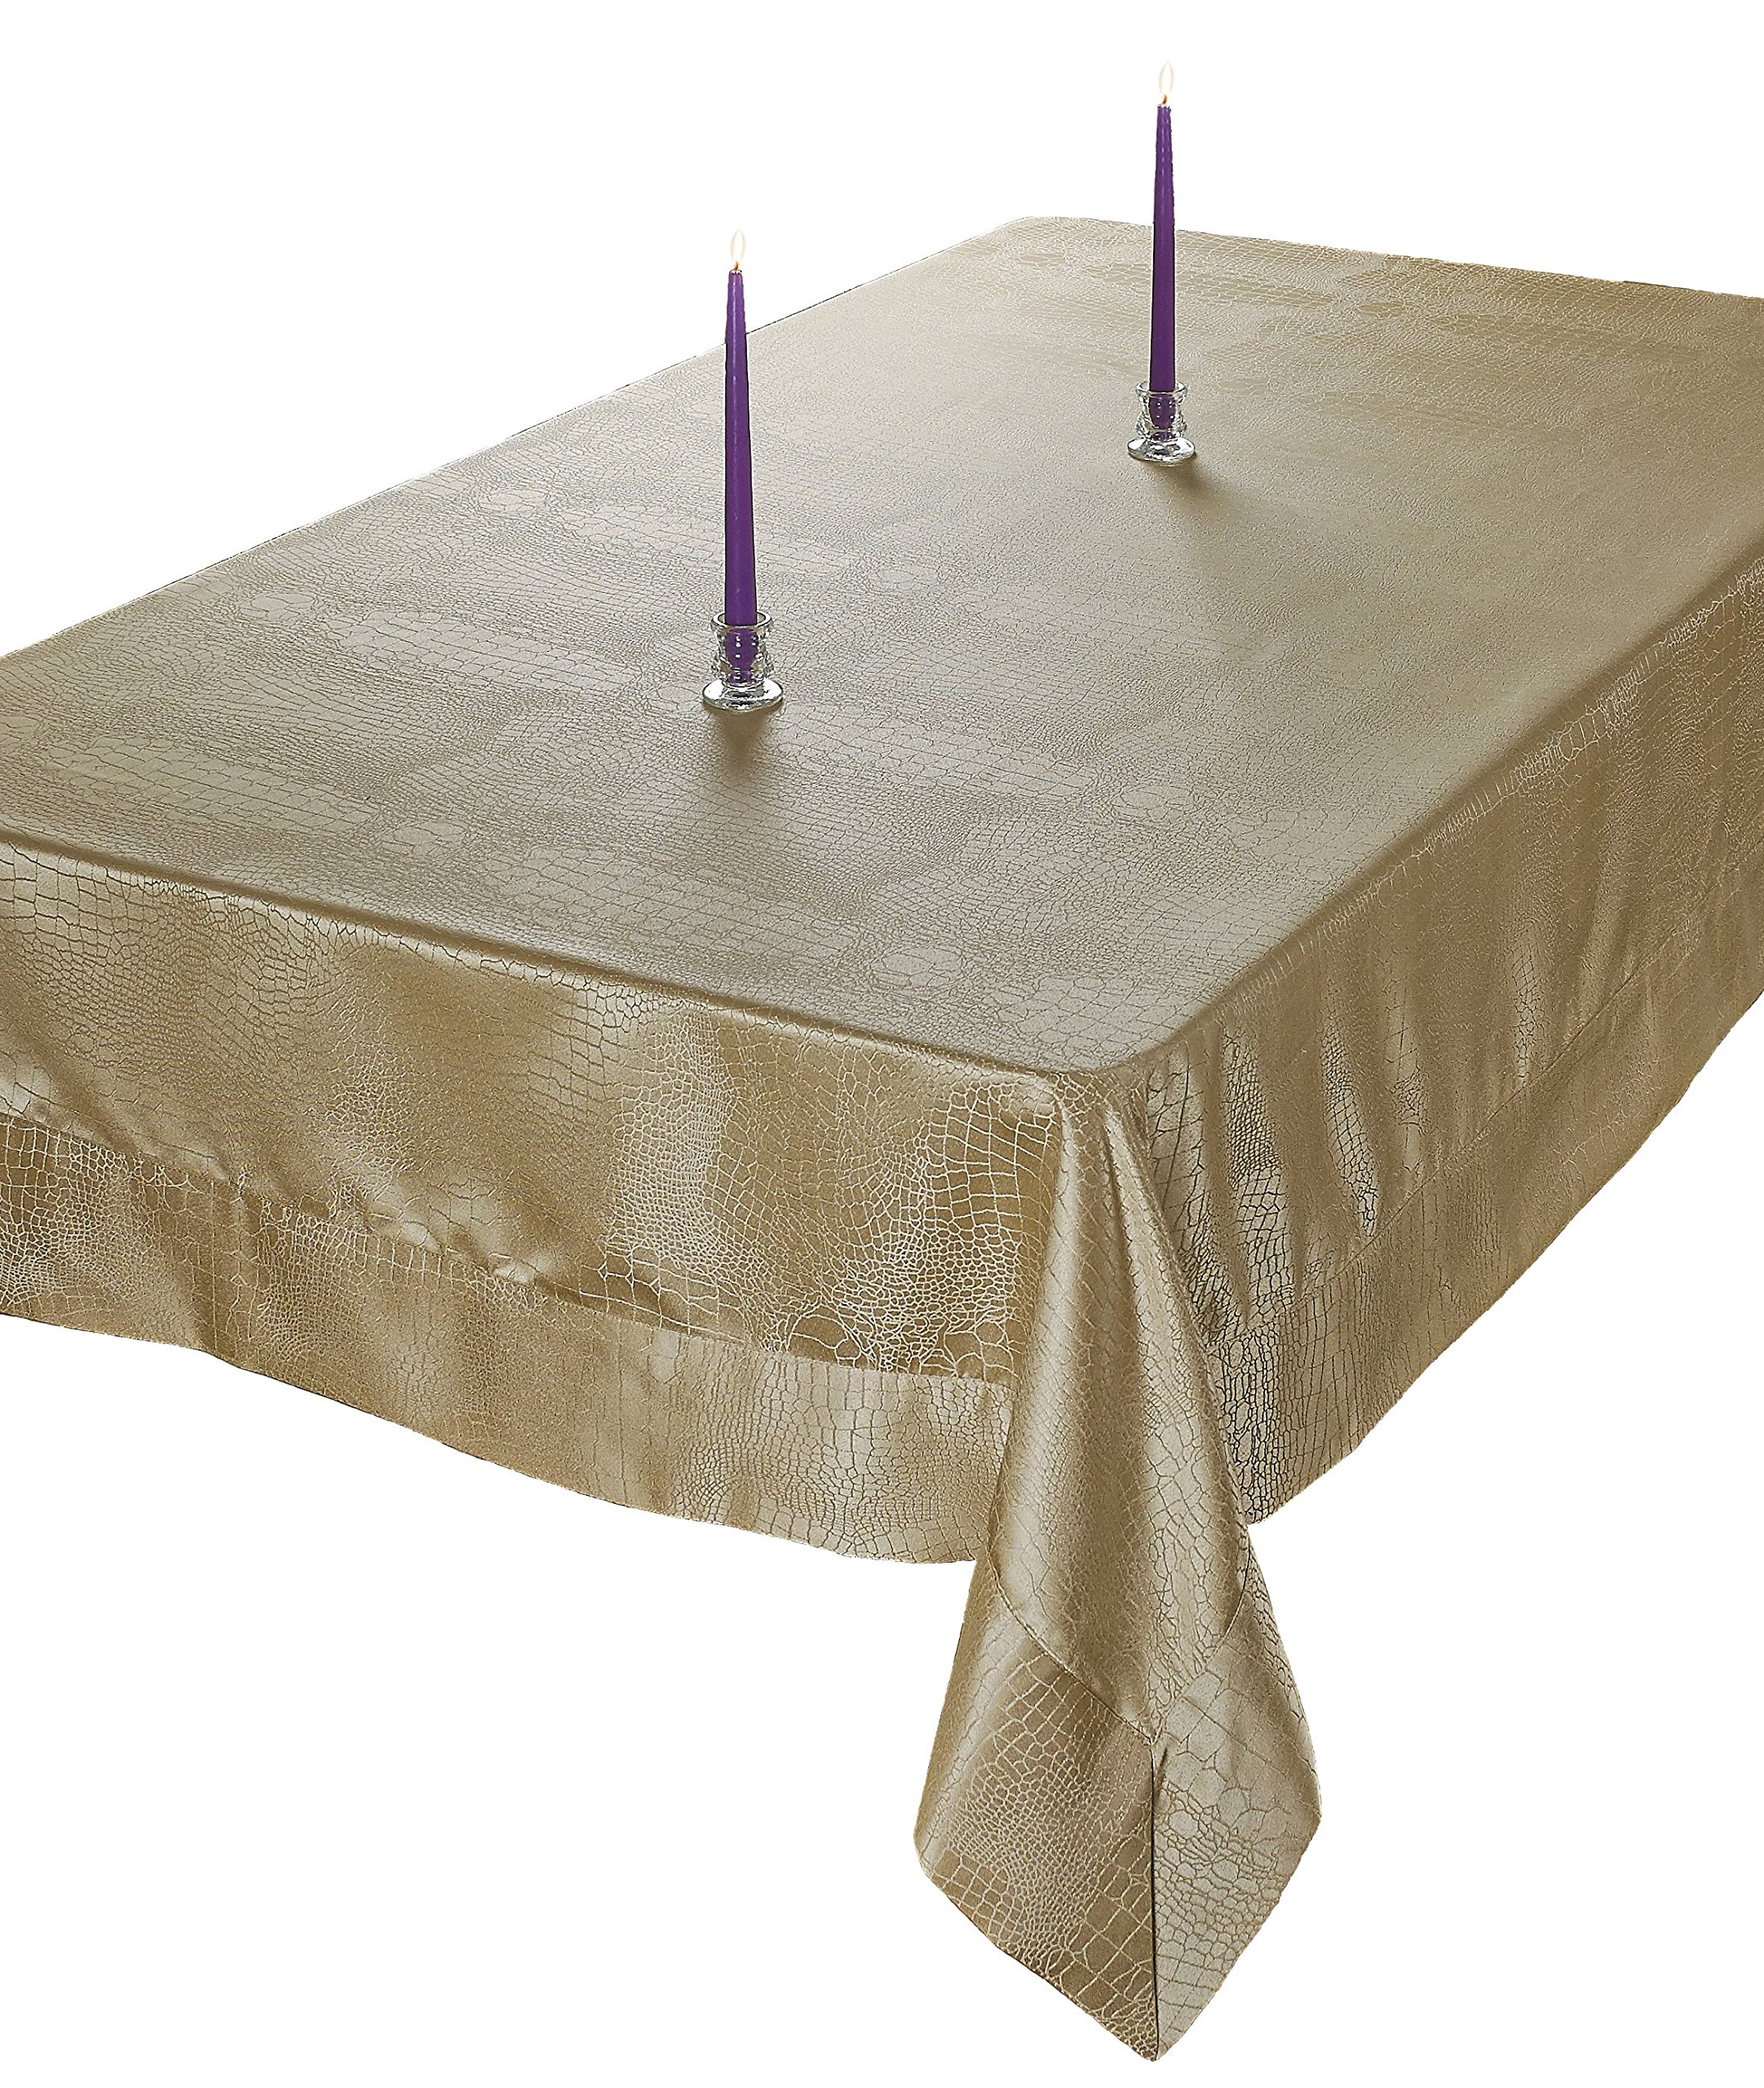 "Violet Linen Luxurious Damask Crocodile Design Tablecloths, 80"" X 80"" Square - in Gold - Live in style ! - the Crocodile tablecloths has the perfect combination of Size, detailing, and color, allowing you to choose the best tablecloth for every occasion Durable construction - they are manufactured from super hard wearing 100Percent polyester material, with a seamless construction that won't easily fray after long term use Add a fresh touch - update your home with this attractive Crocodile damask design tablecloth, that will brighten up your home, and will surely add a beautiful touch to your table decor - tablecloths, kitchen-dining-room-table-linens, kitchen-dining-room - A1jeGhkIJ3L -"